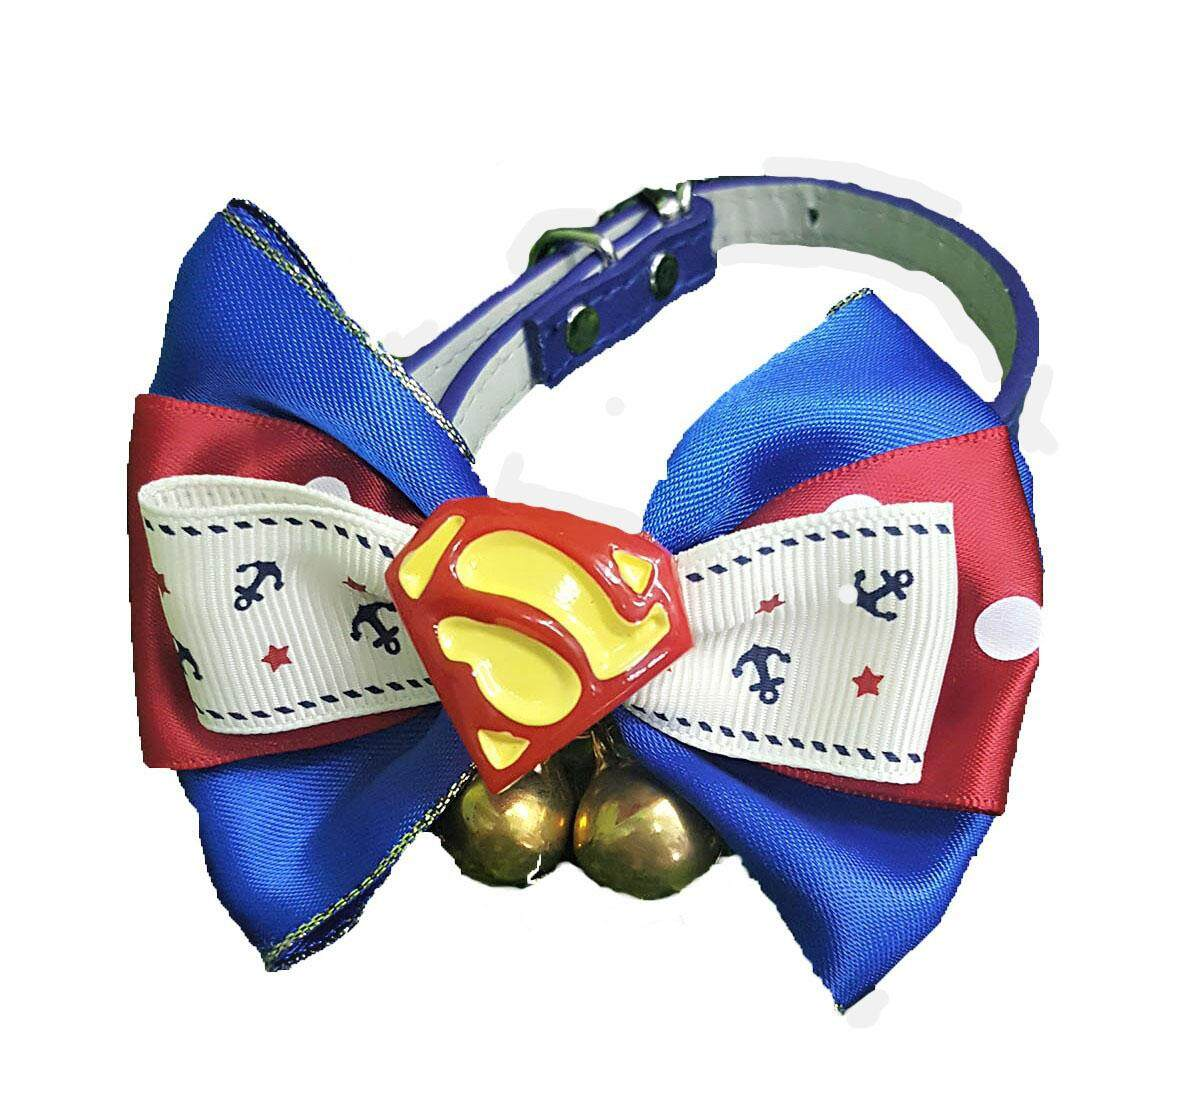 Qq Cat Collar Big Ribbon Bow Tie Superman3 With Big Belle Handmade By Jit Heng Marketing S/b.